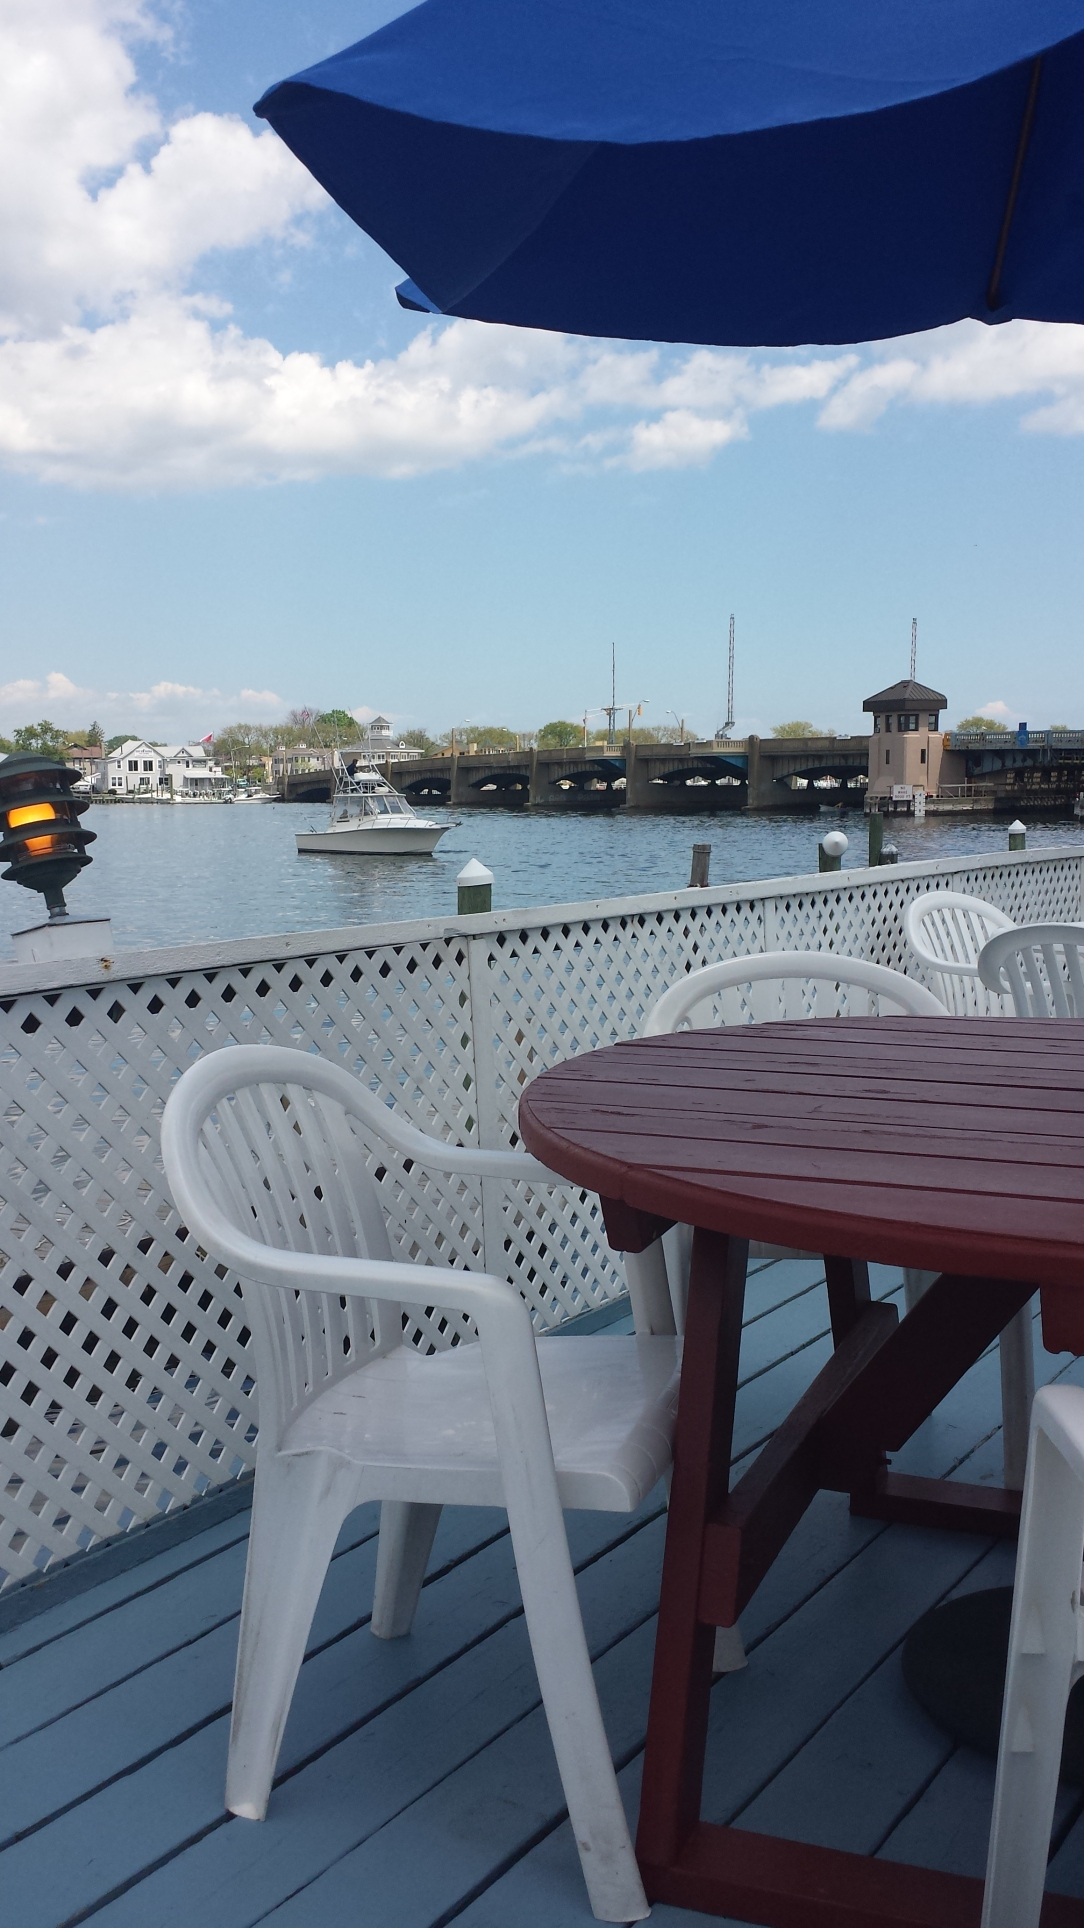 To plagiarize my brother's Instagram: a dockside lunch is a great lunch.